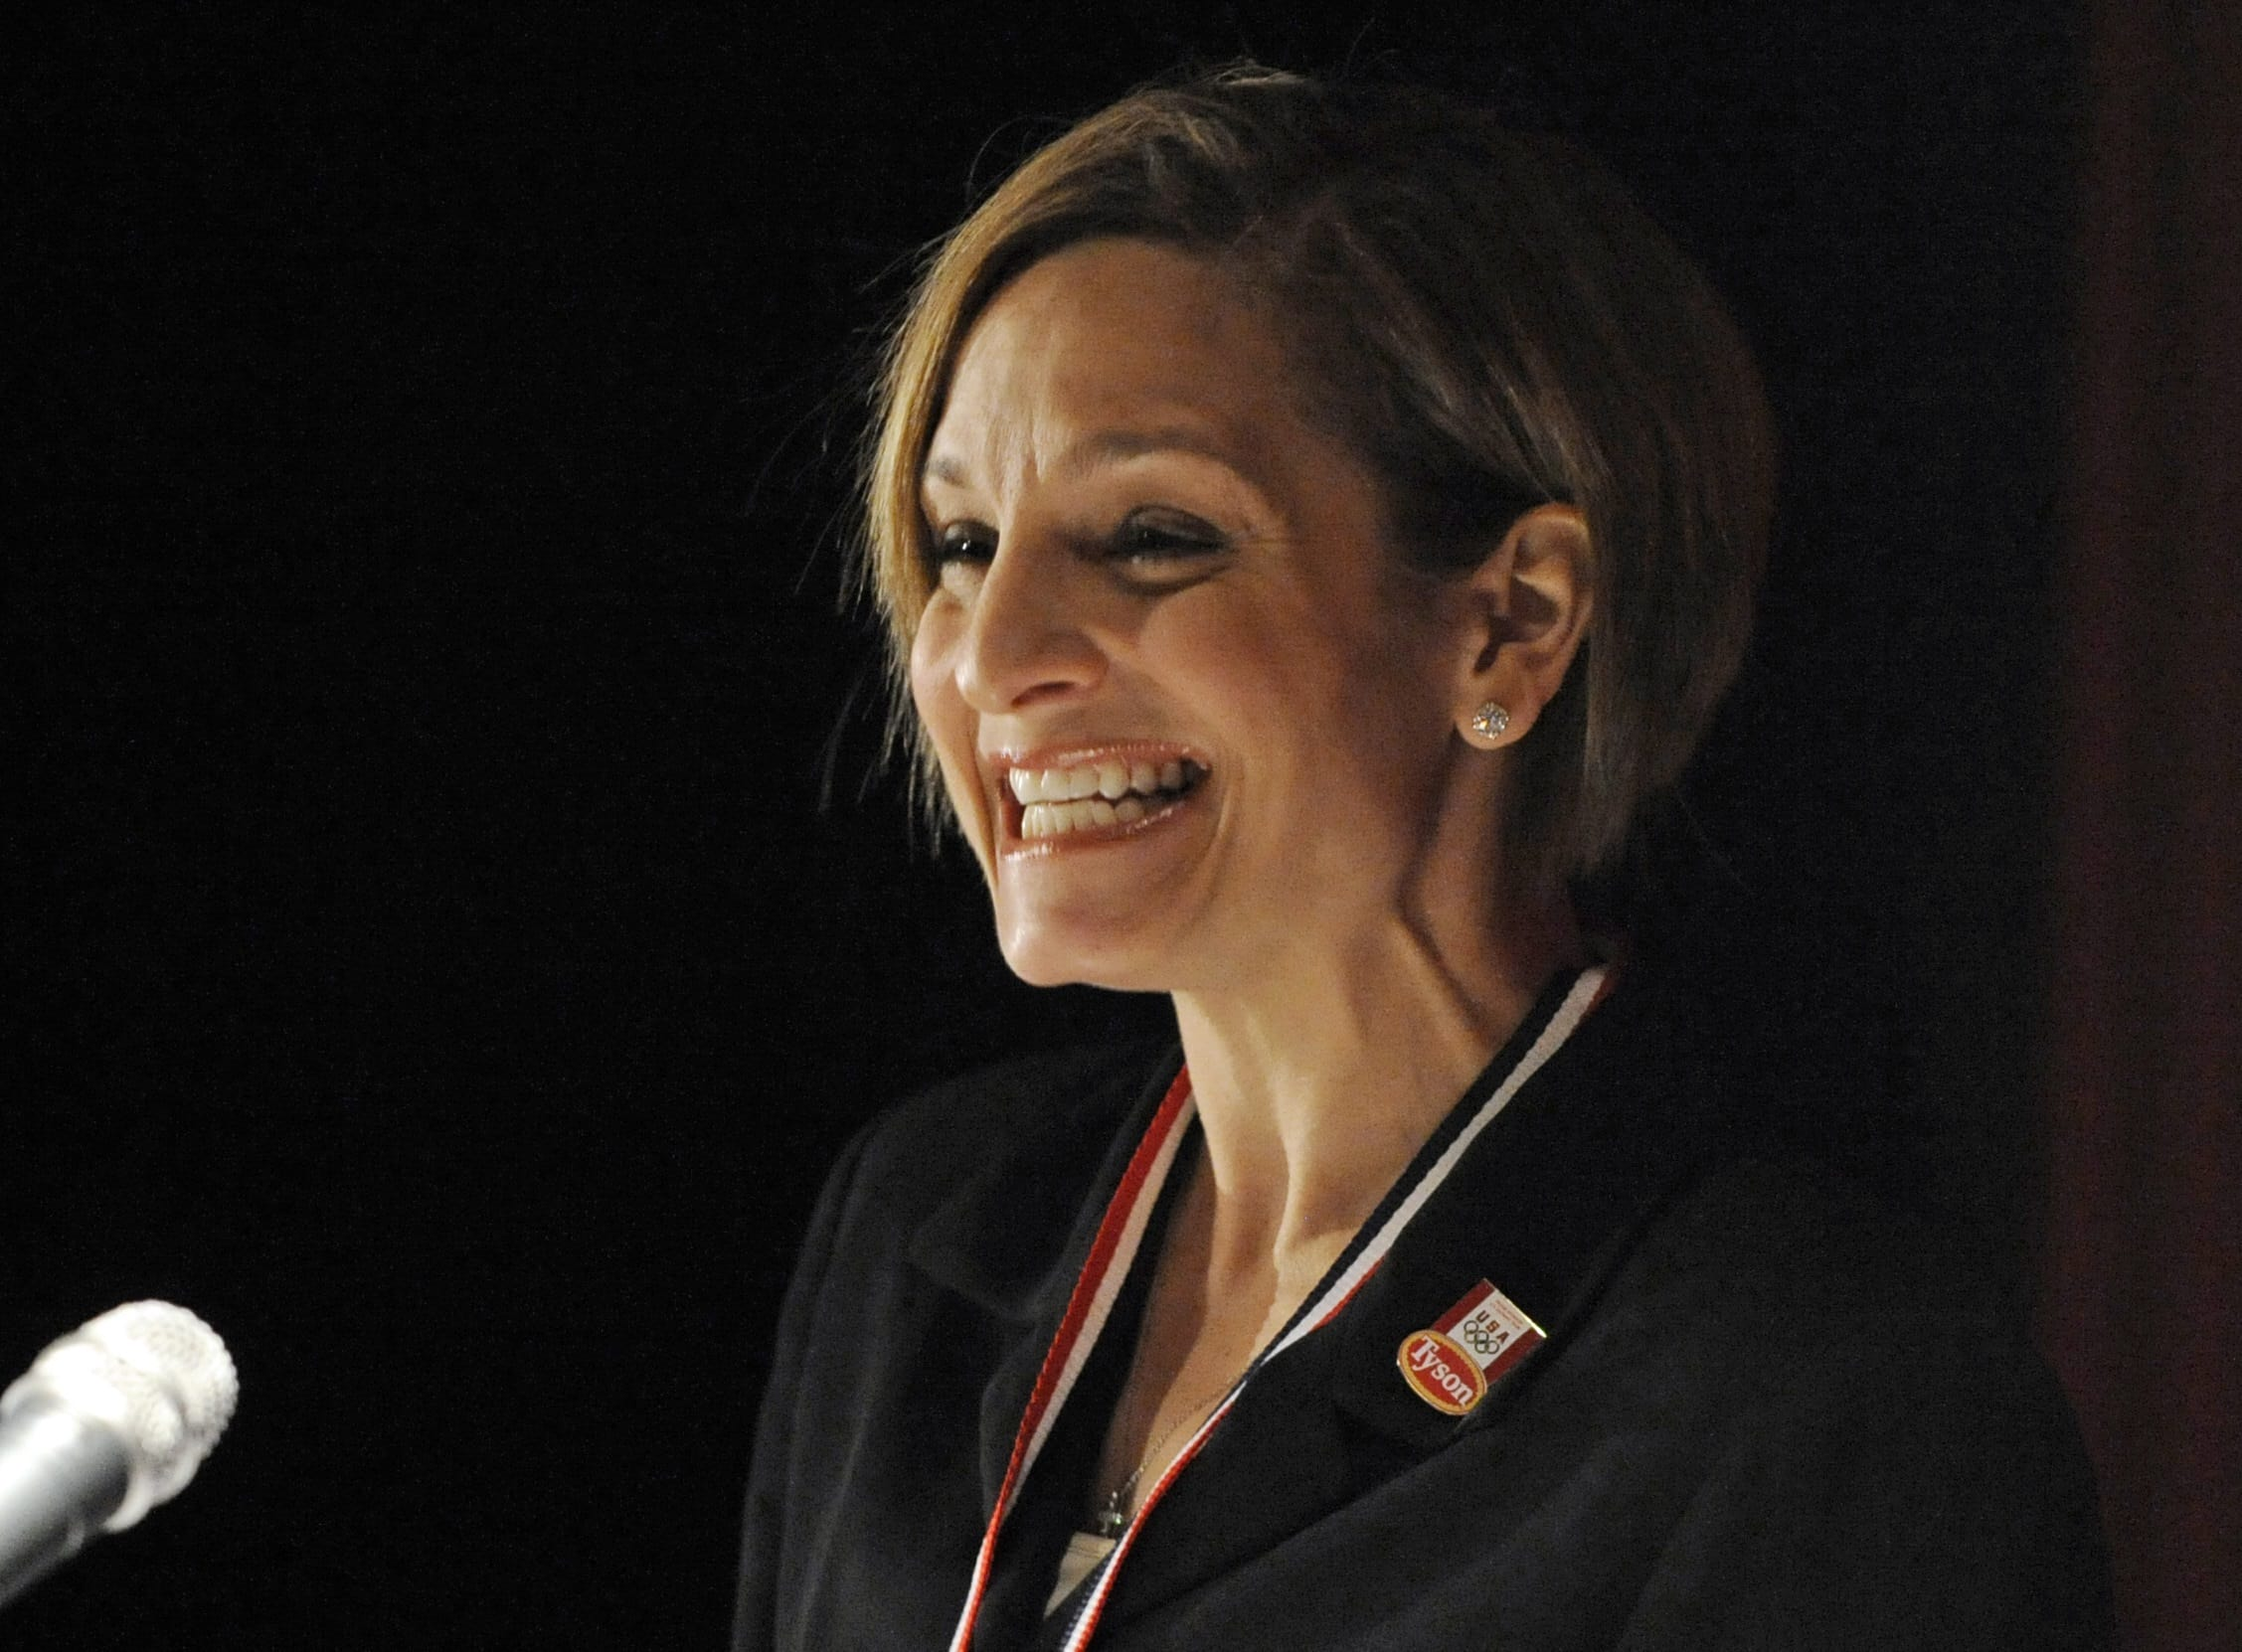 Photo of former Olympic athlete Mary Lou Retton